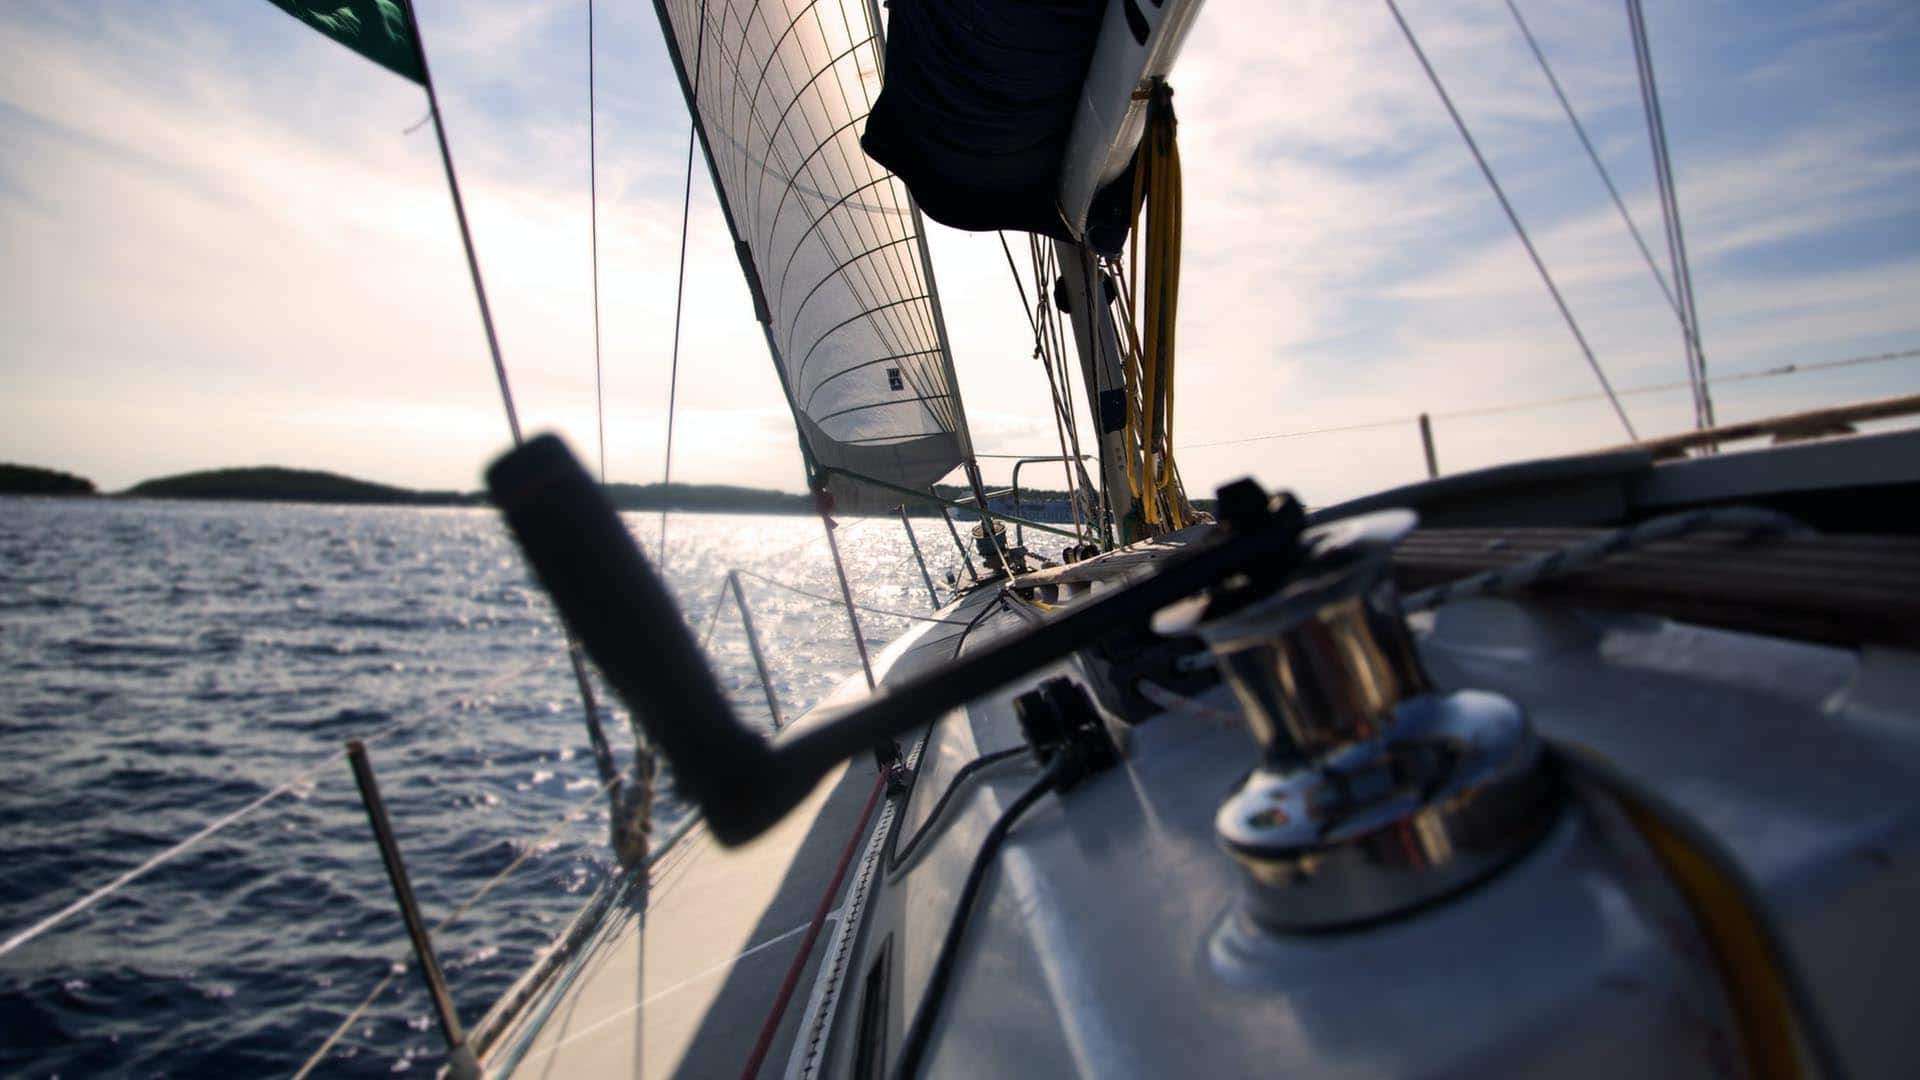 Boat Accidents And Insurance In Ontario: A Lawyer's Perspective